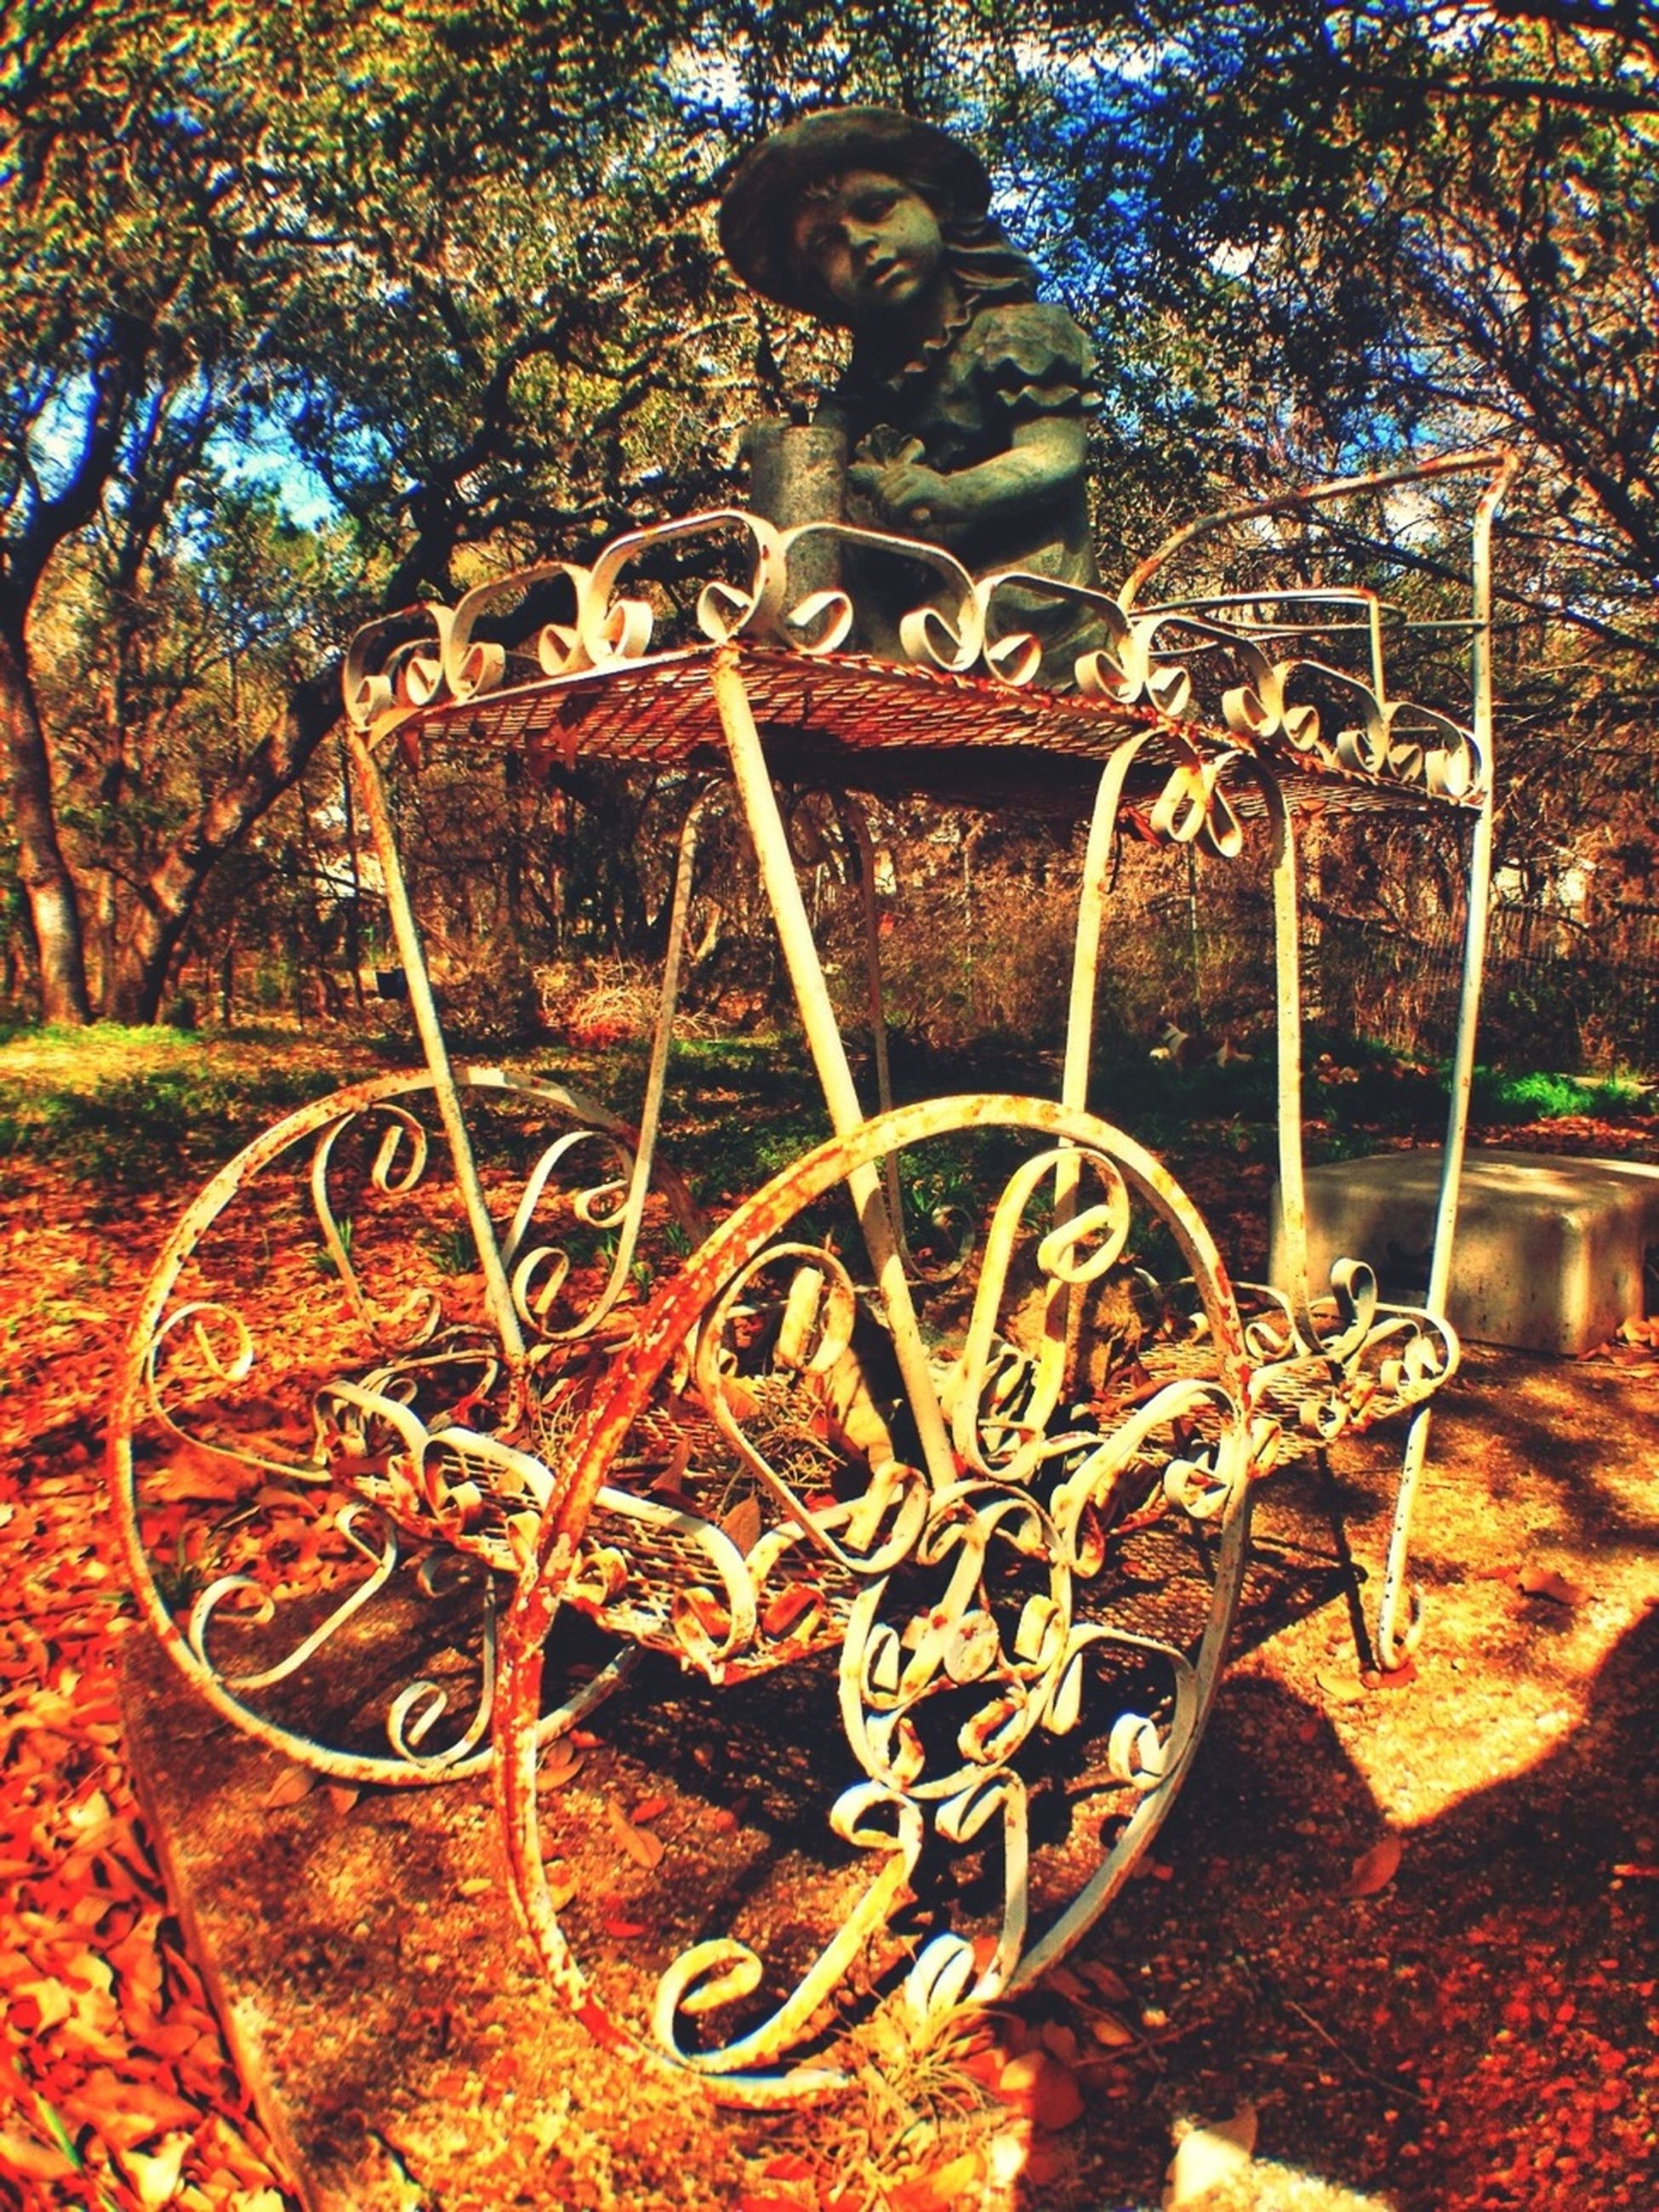 wheel, bicycle, metal, rusty, old, sunlight, built structure, day, no people, tree, art and craft, metallic, architecture, outdoors, art, abandoned, creativity, wall - building feature, close-up, wood - material